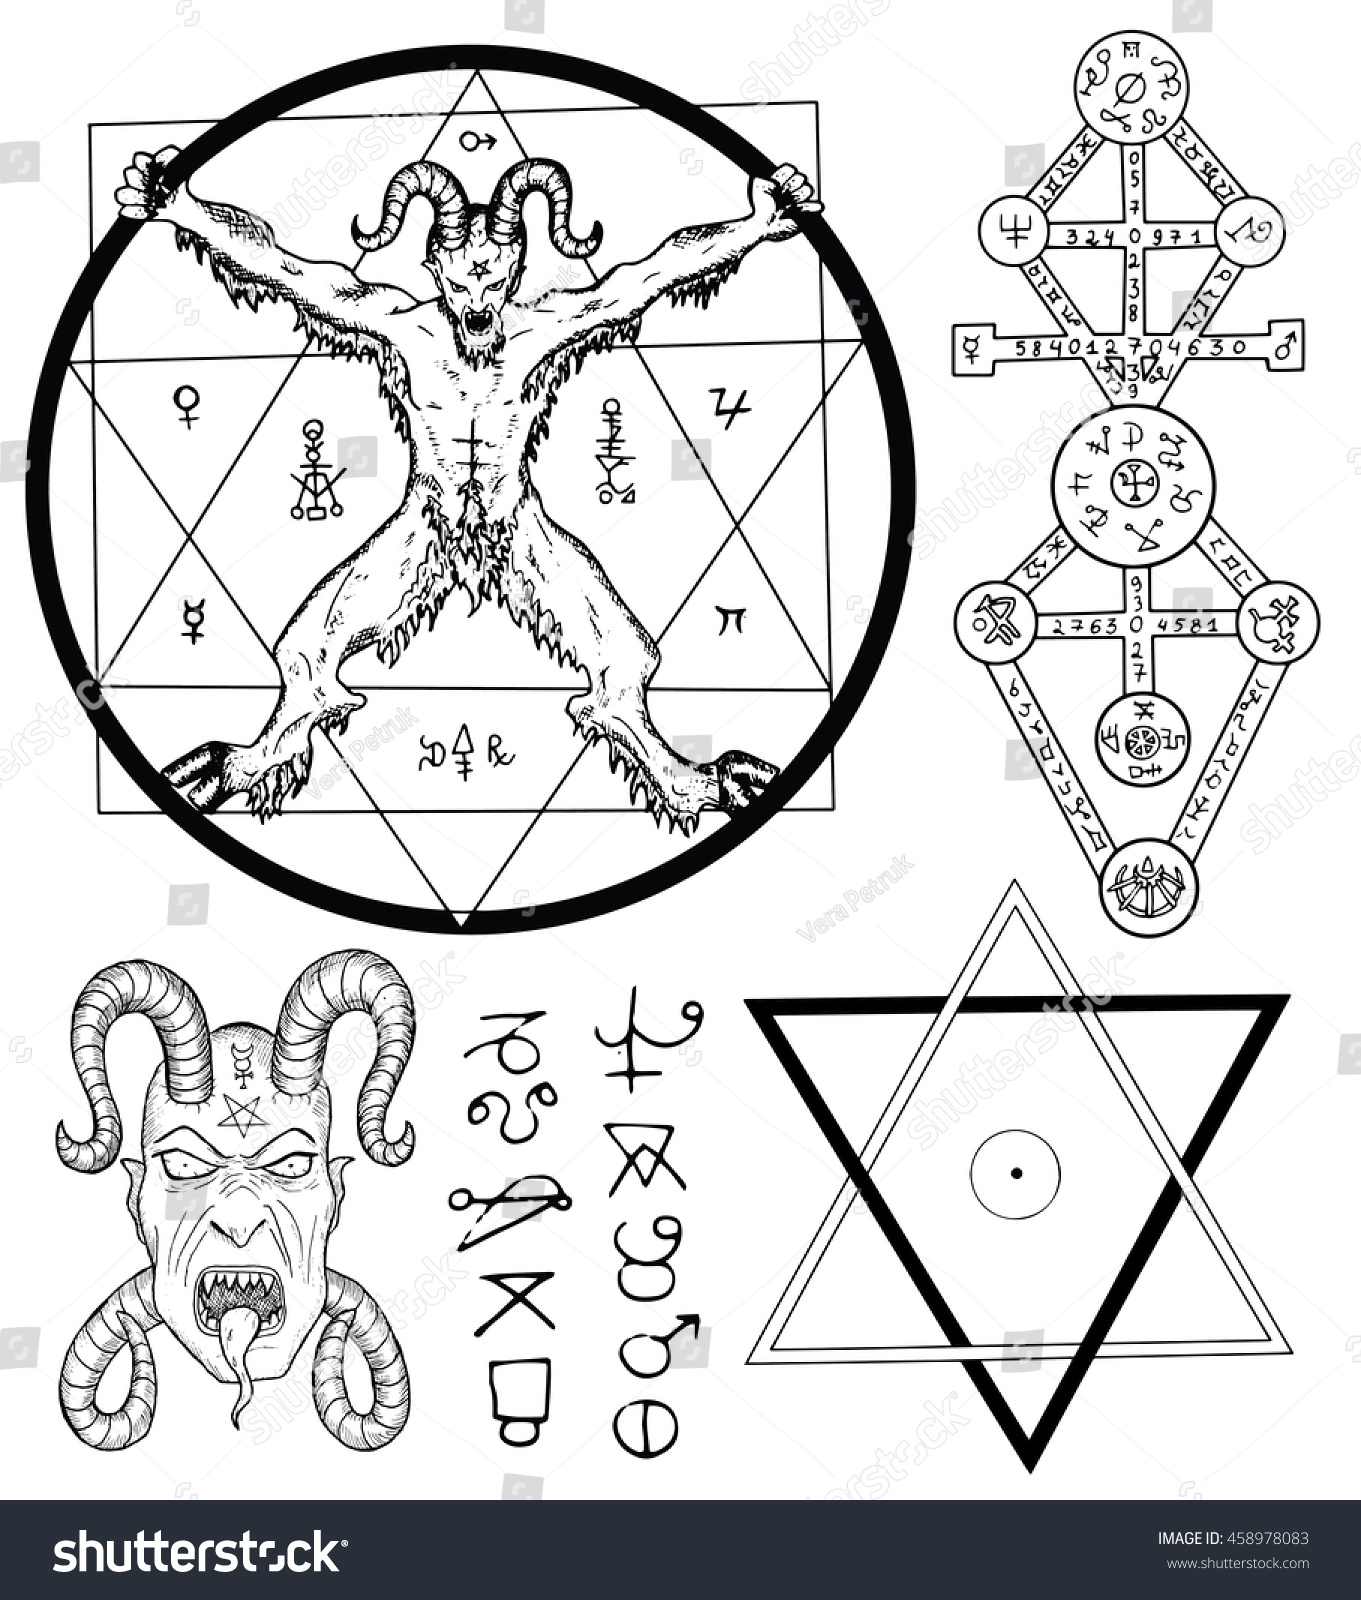 Magic set devil satan pentagram mystic stock vector 458978083 magic set with devil satan pentagram and mystic symbols collection of sketch illustrations buycottarizona